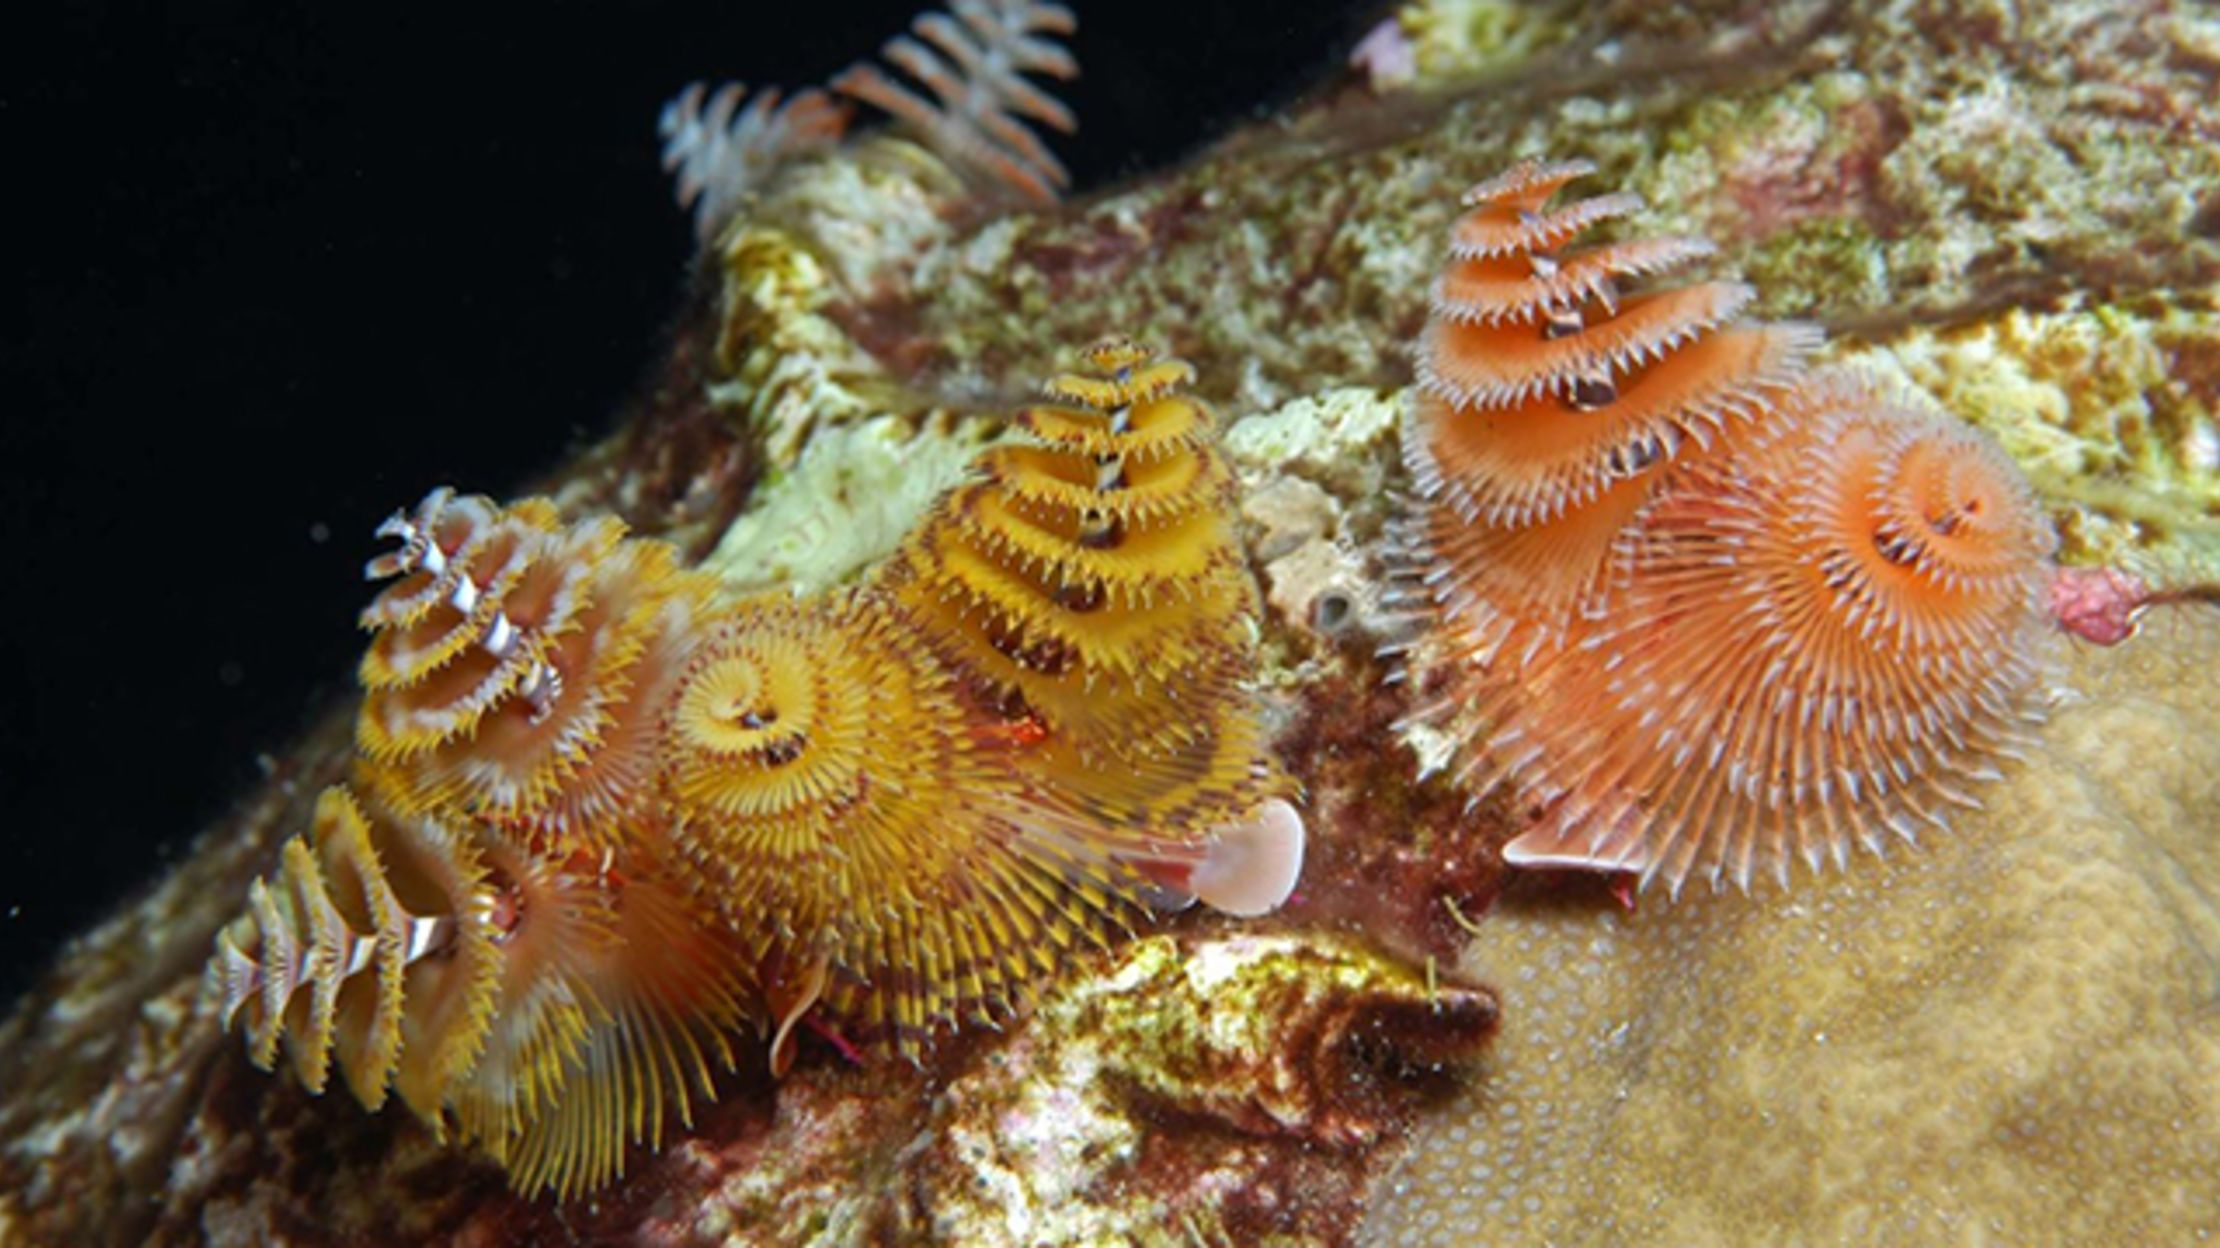 The Christmas Tree Worm Has Eyes on Its